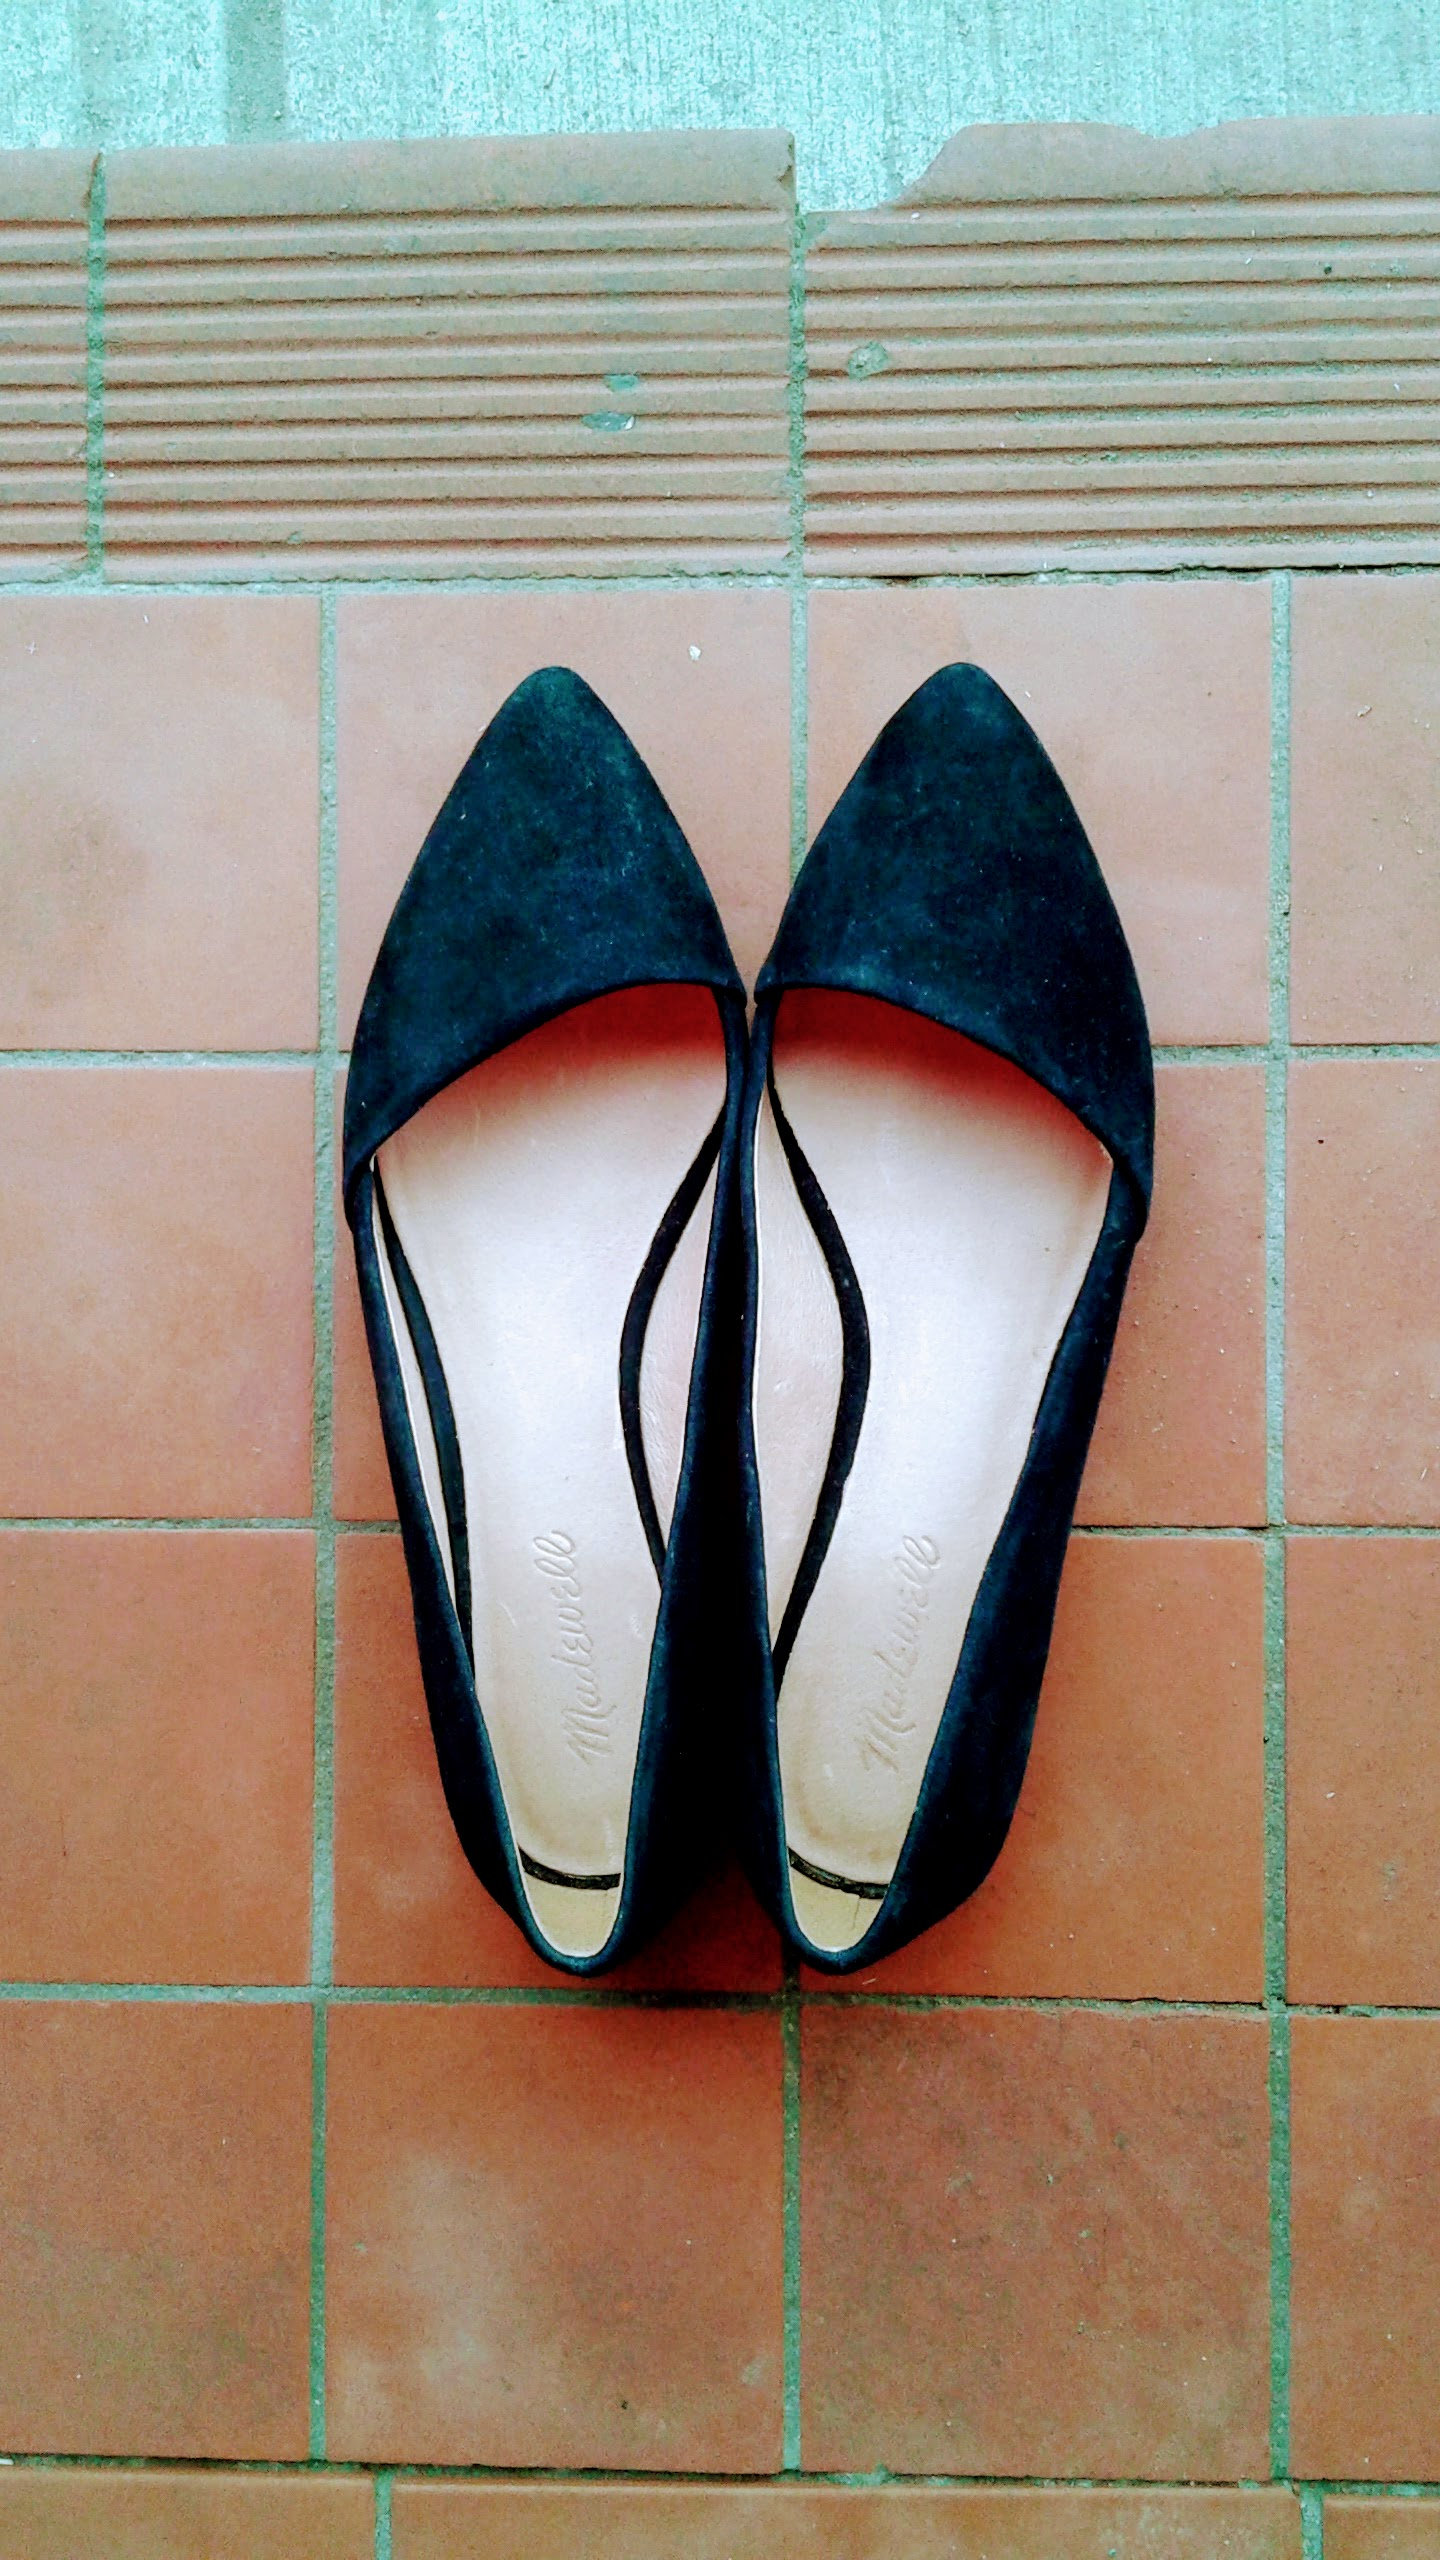 Madewell shoes; S8, $38